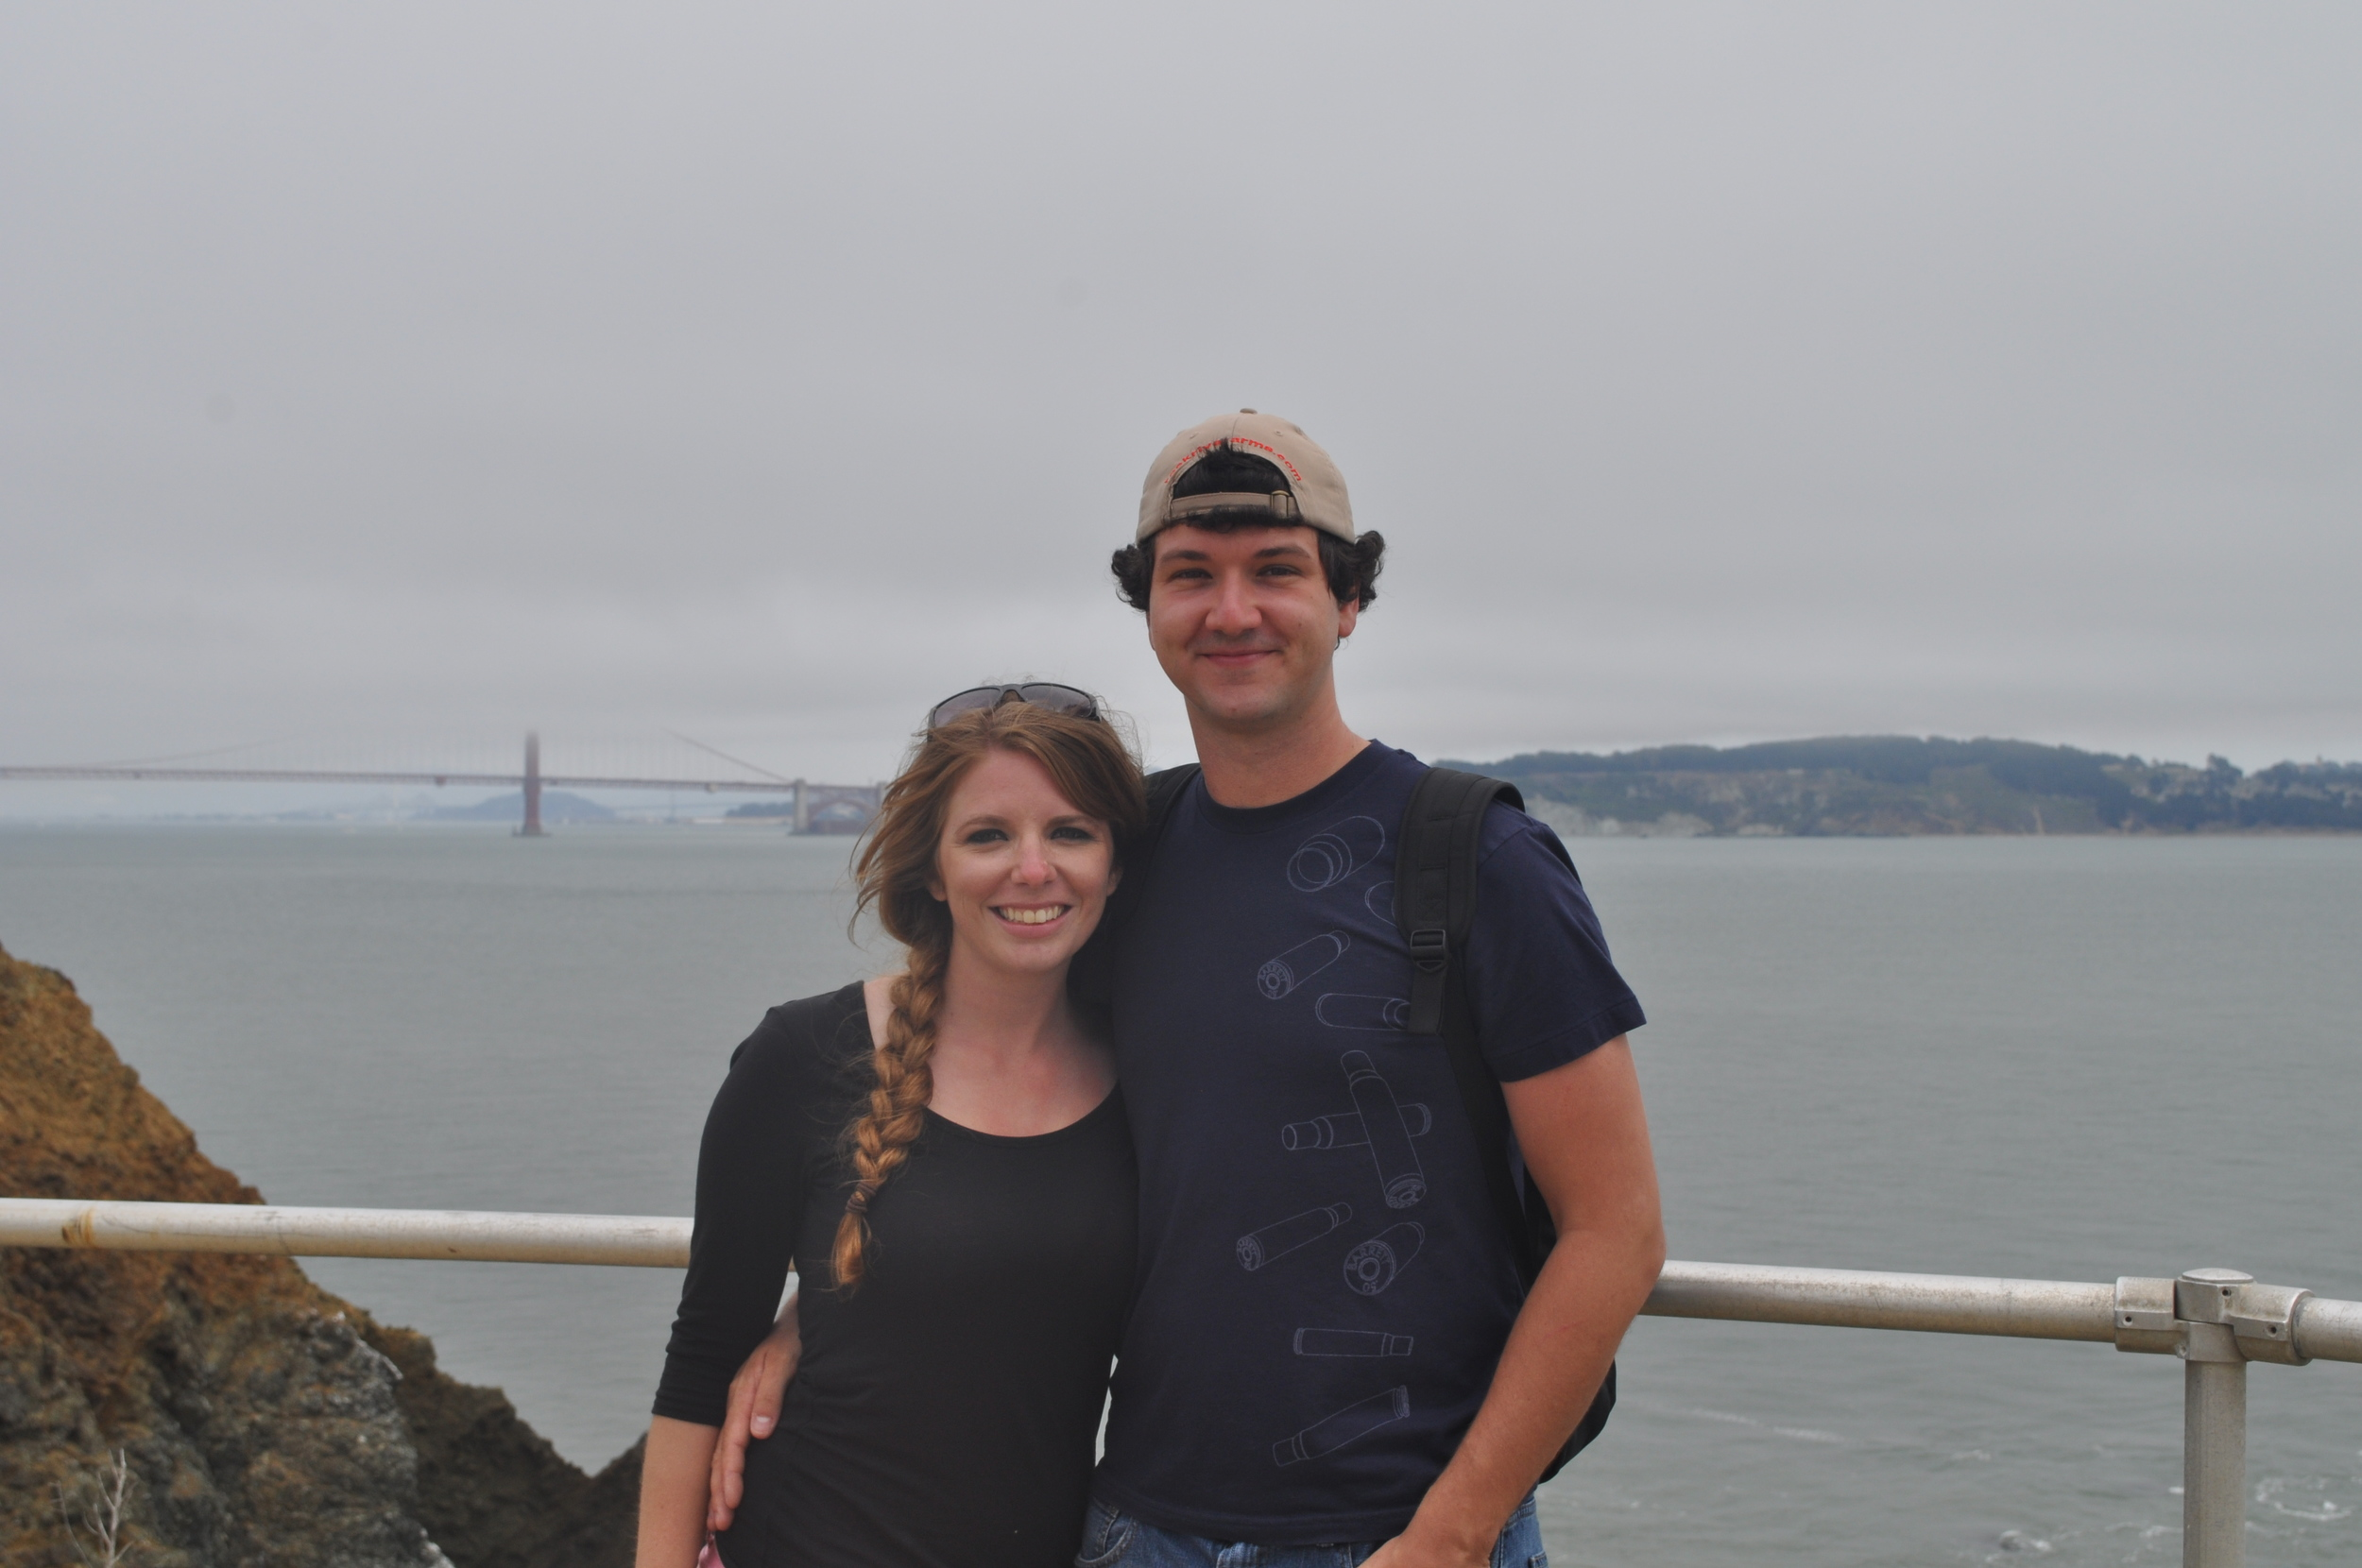 Golden Gate there behind us.